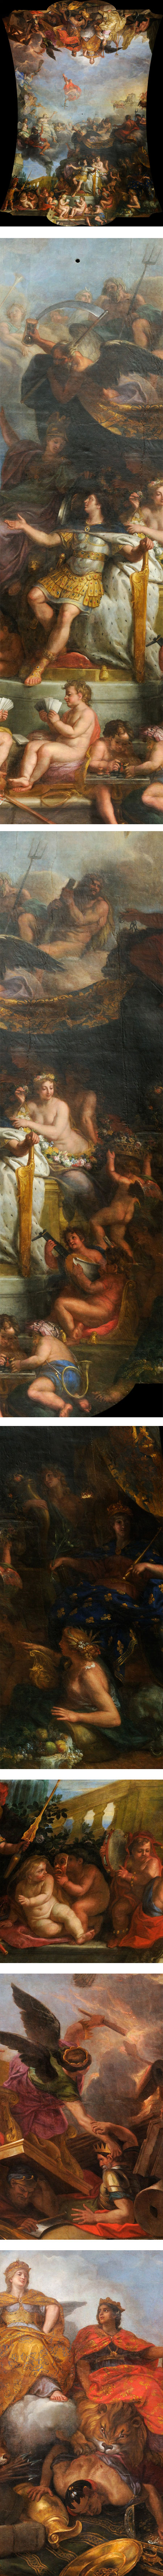 The King Governs by Himself, Charles Le Brun